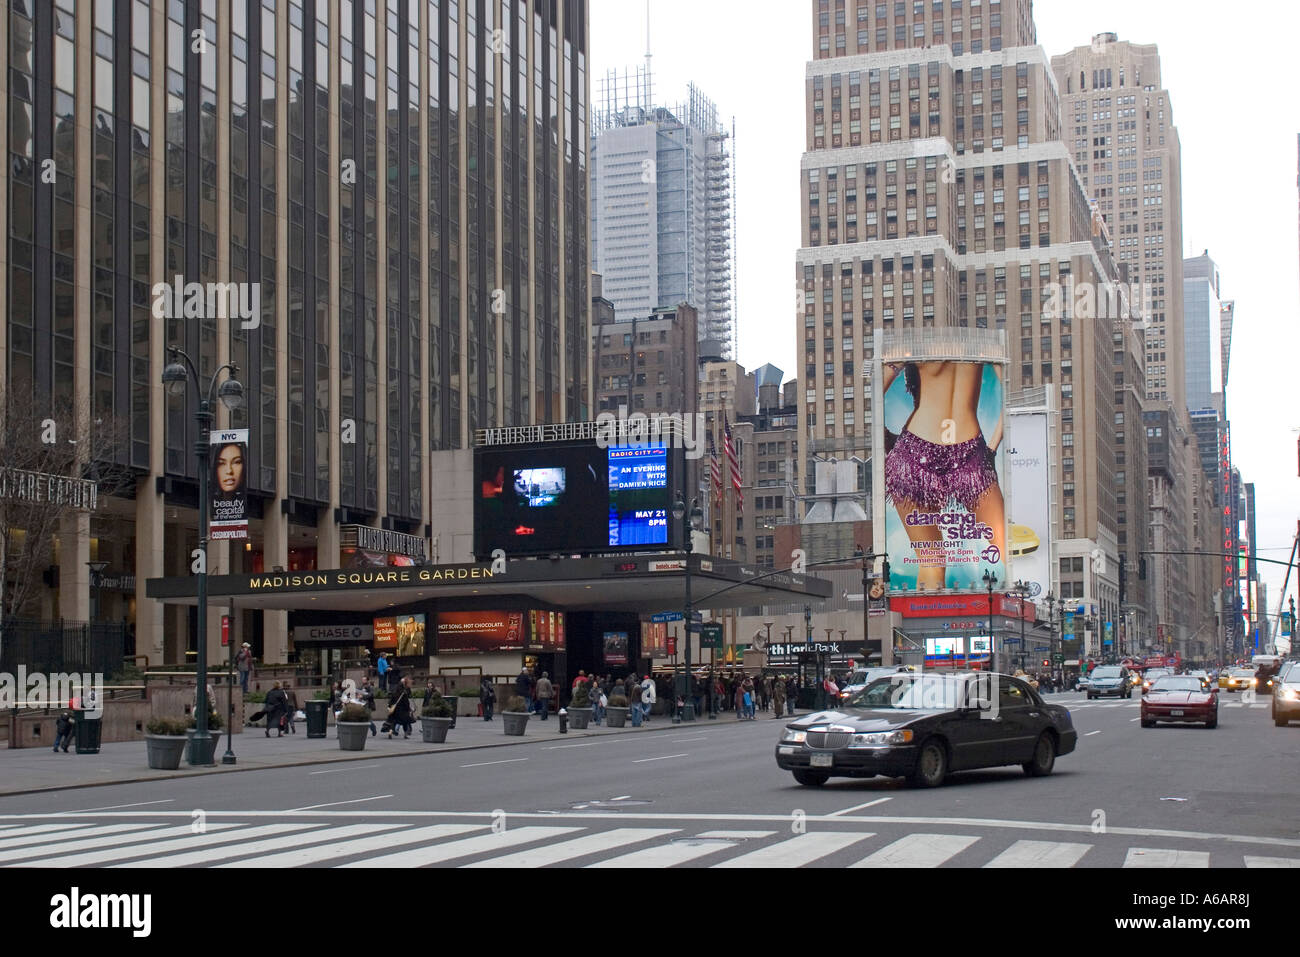 Penn Station and Madison Square Garden Seventh Avenue New